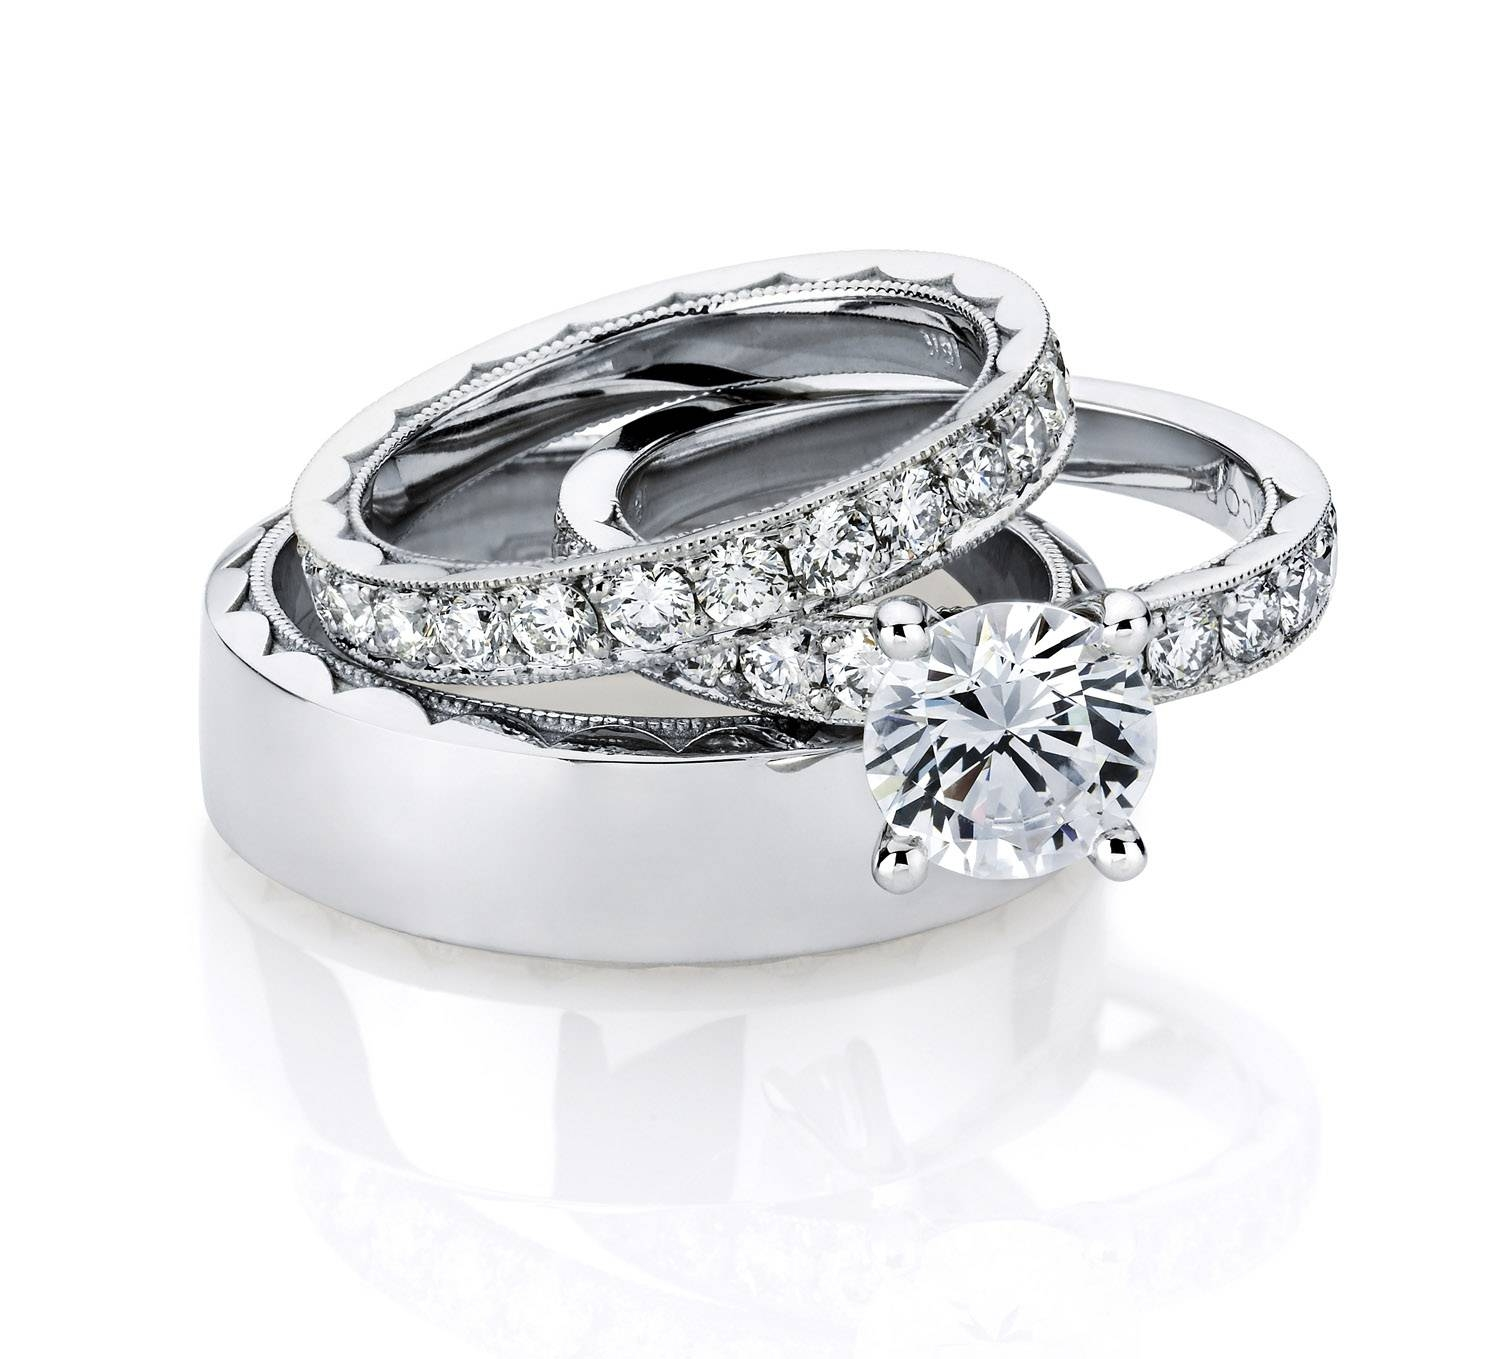 Wedding Rings Sets For Him And Her | Wedding, Promise, Diamond Inside Wedding Bands Set For Him And Her (View 14 of 15)